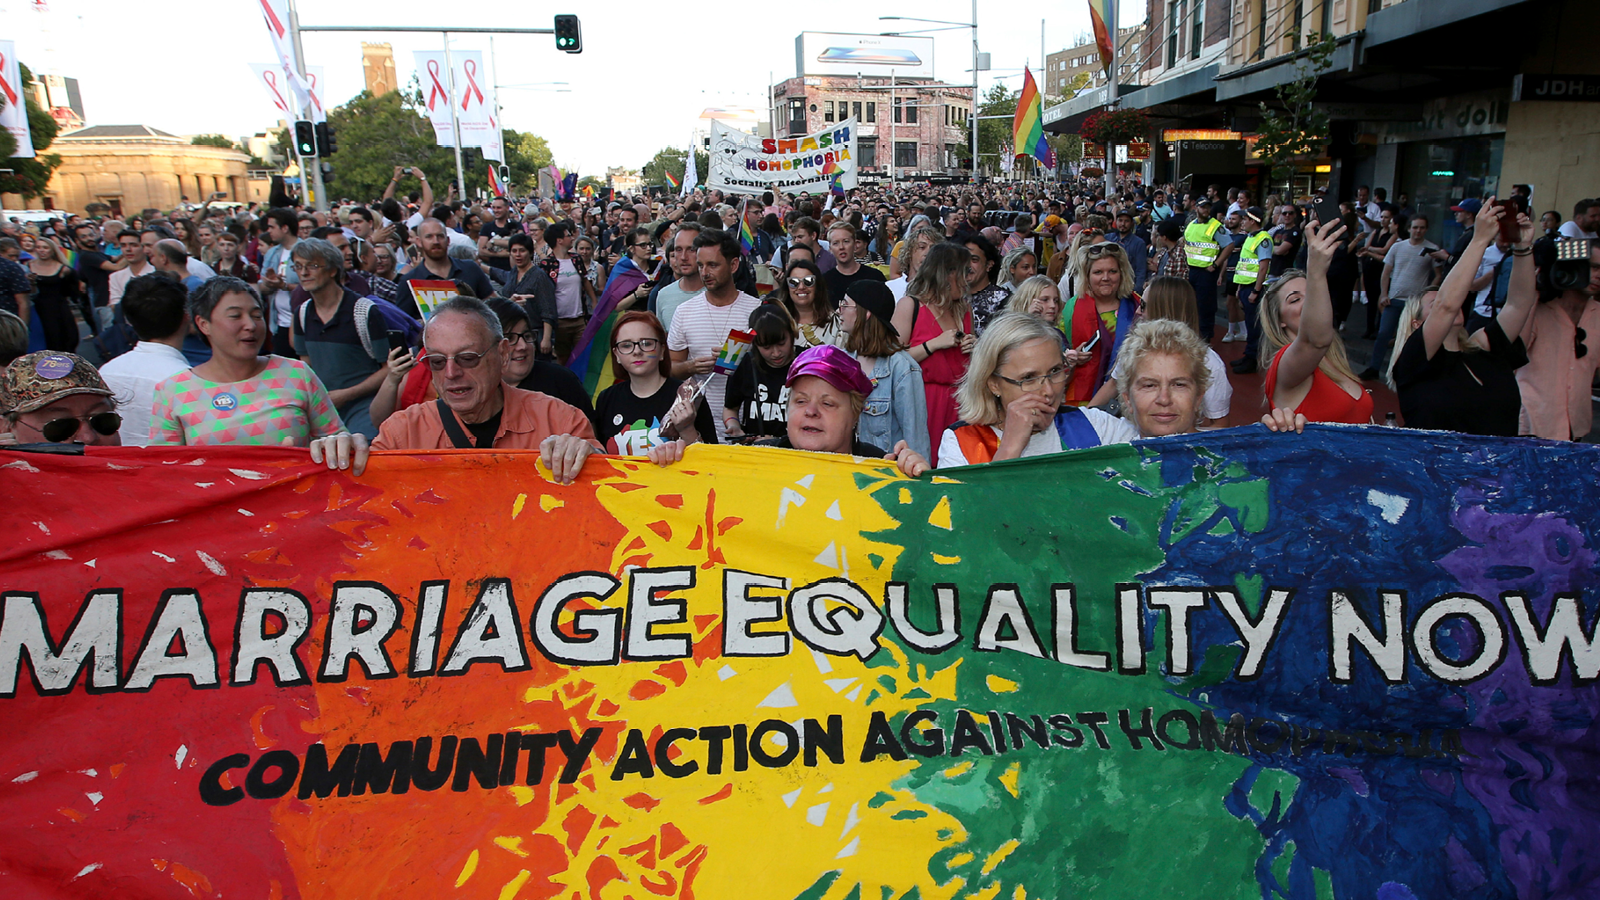 LGBTQ People and Allies Take to Social Media to Celebrate Australia's Marriage Equality Vote